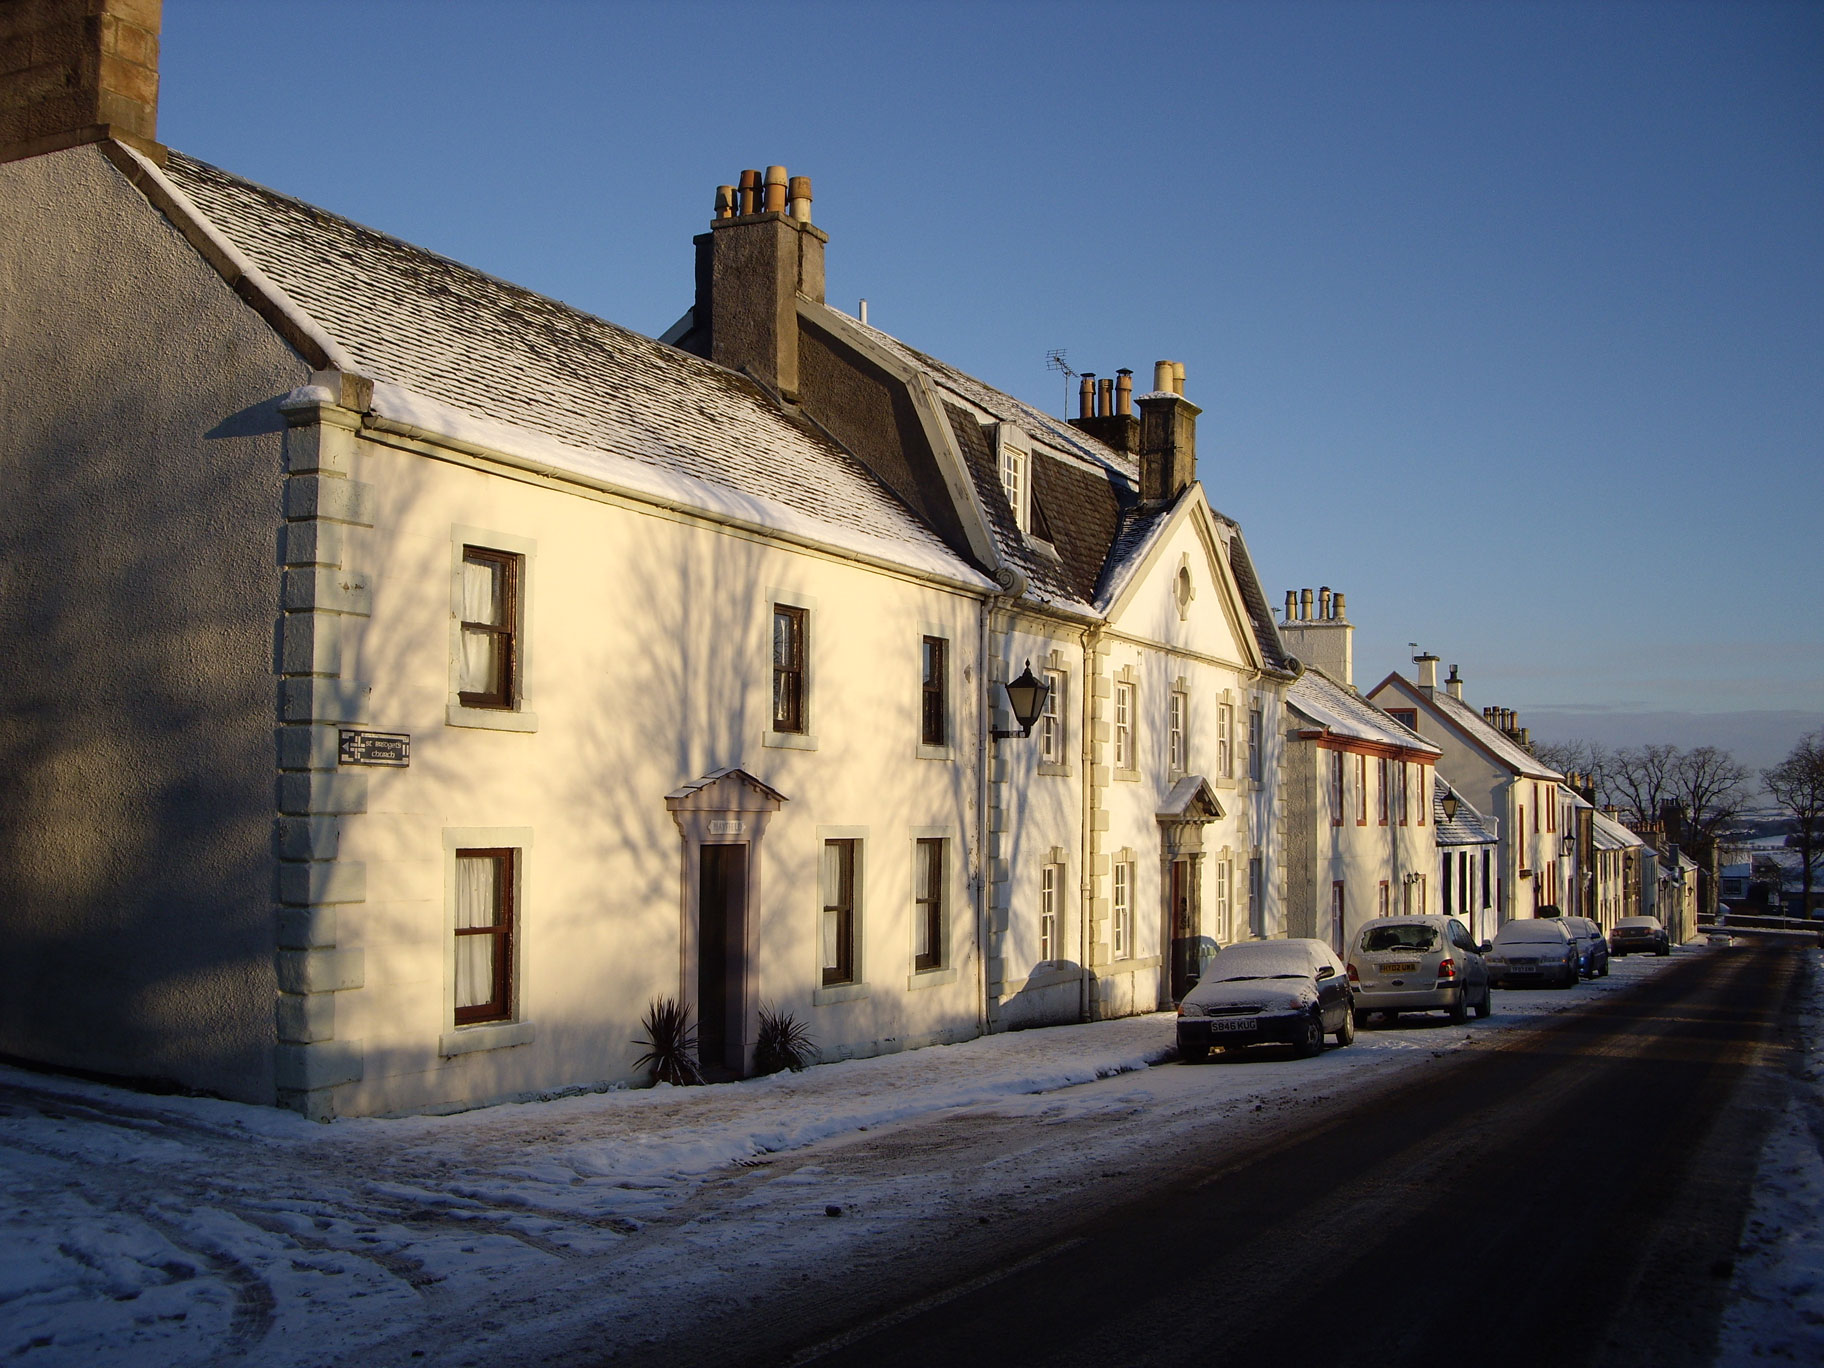 Polnoon Street on a winter morning